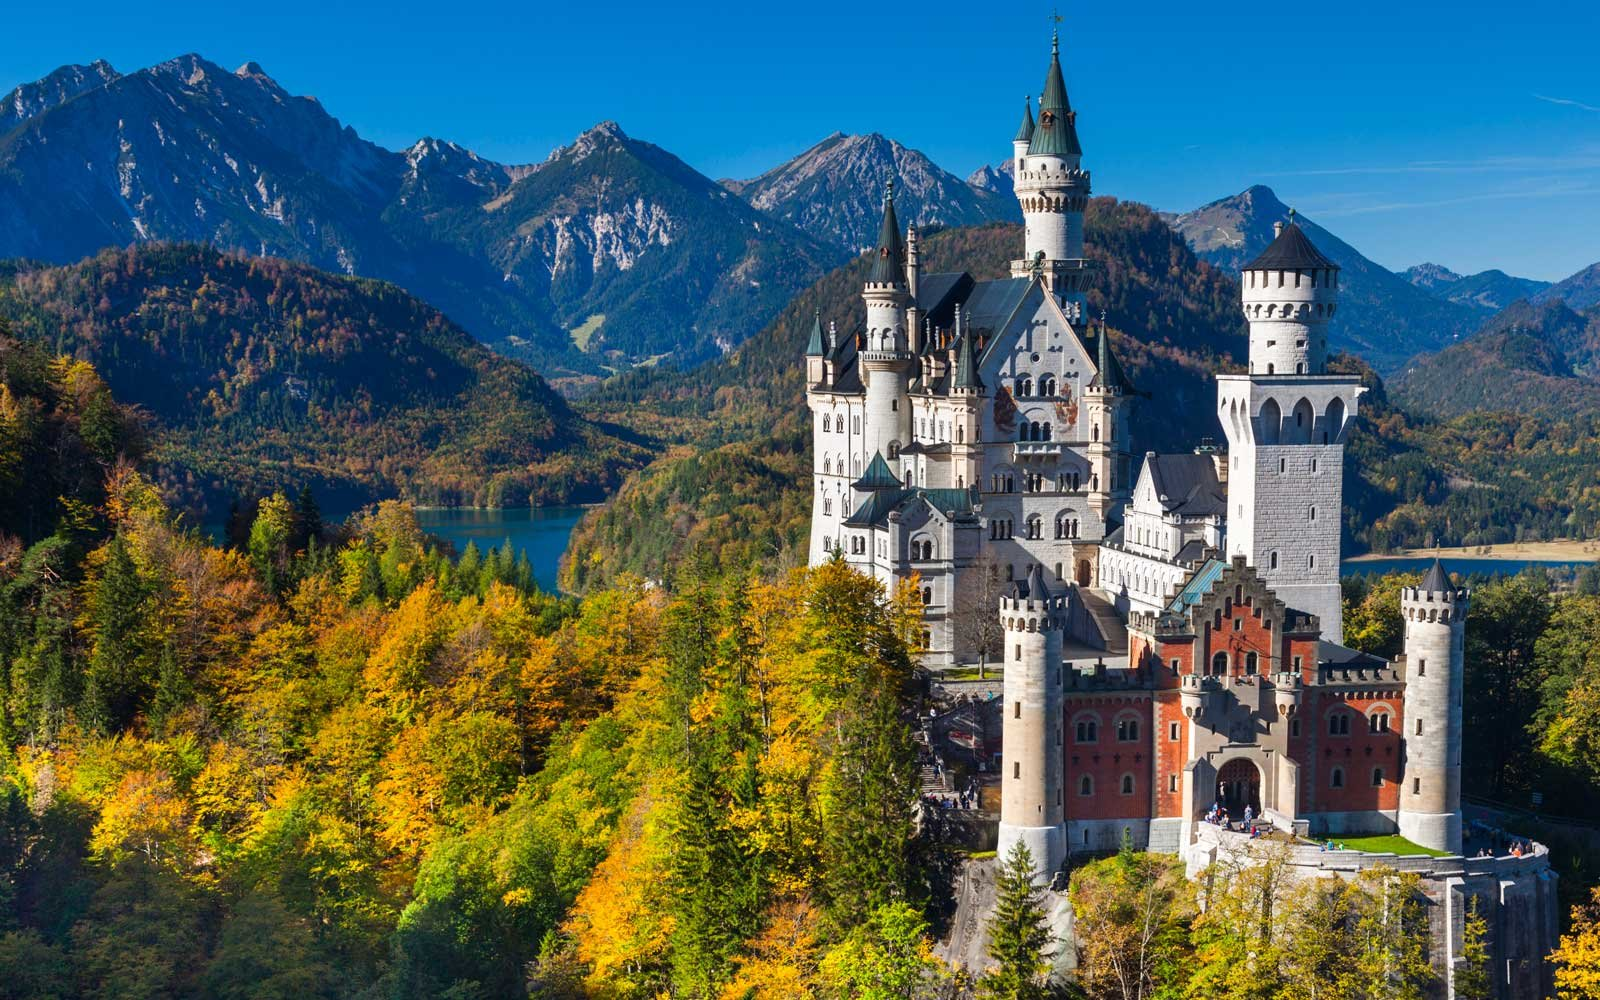 Neuschwanstein, The castle of the fairy-tale king in Germany